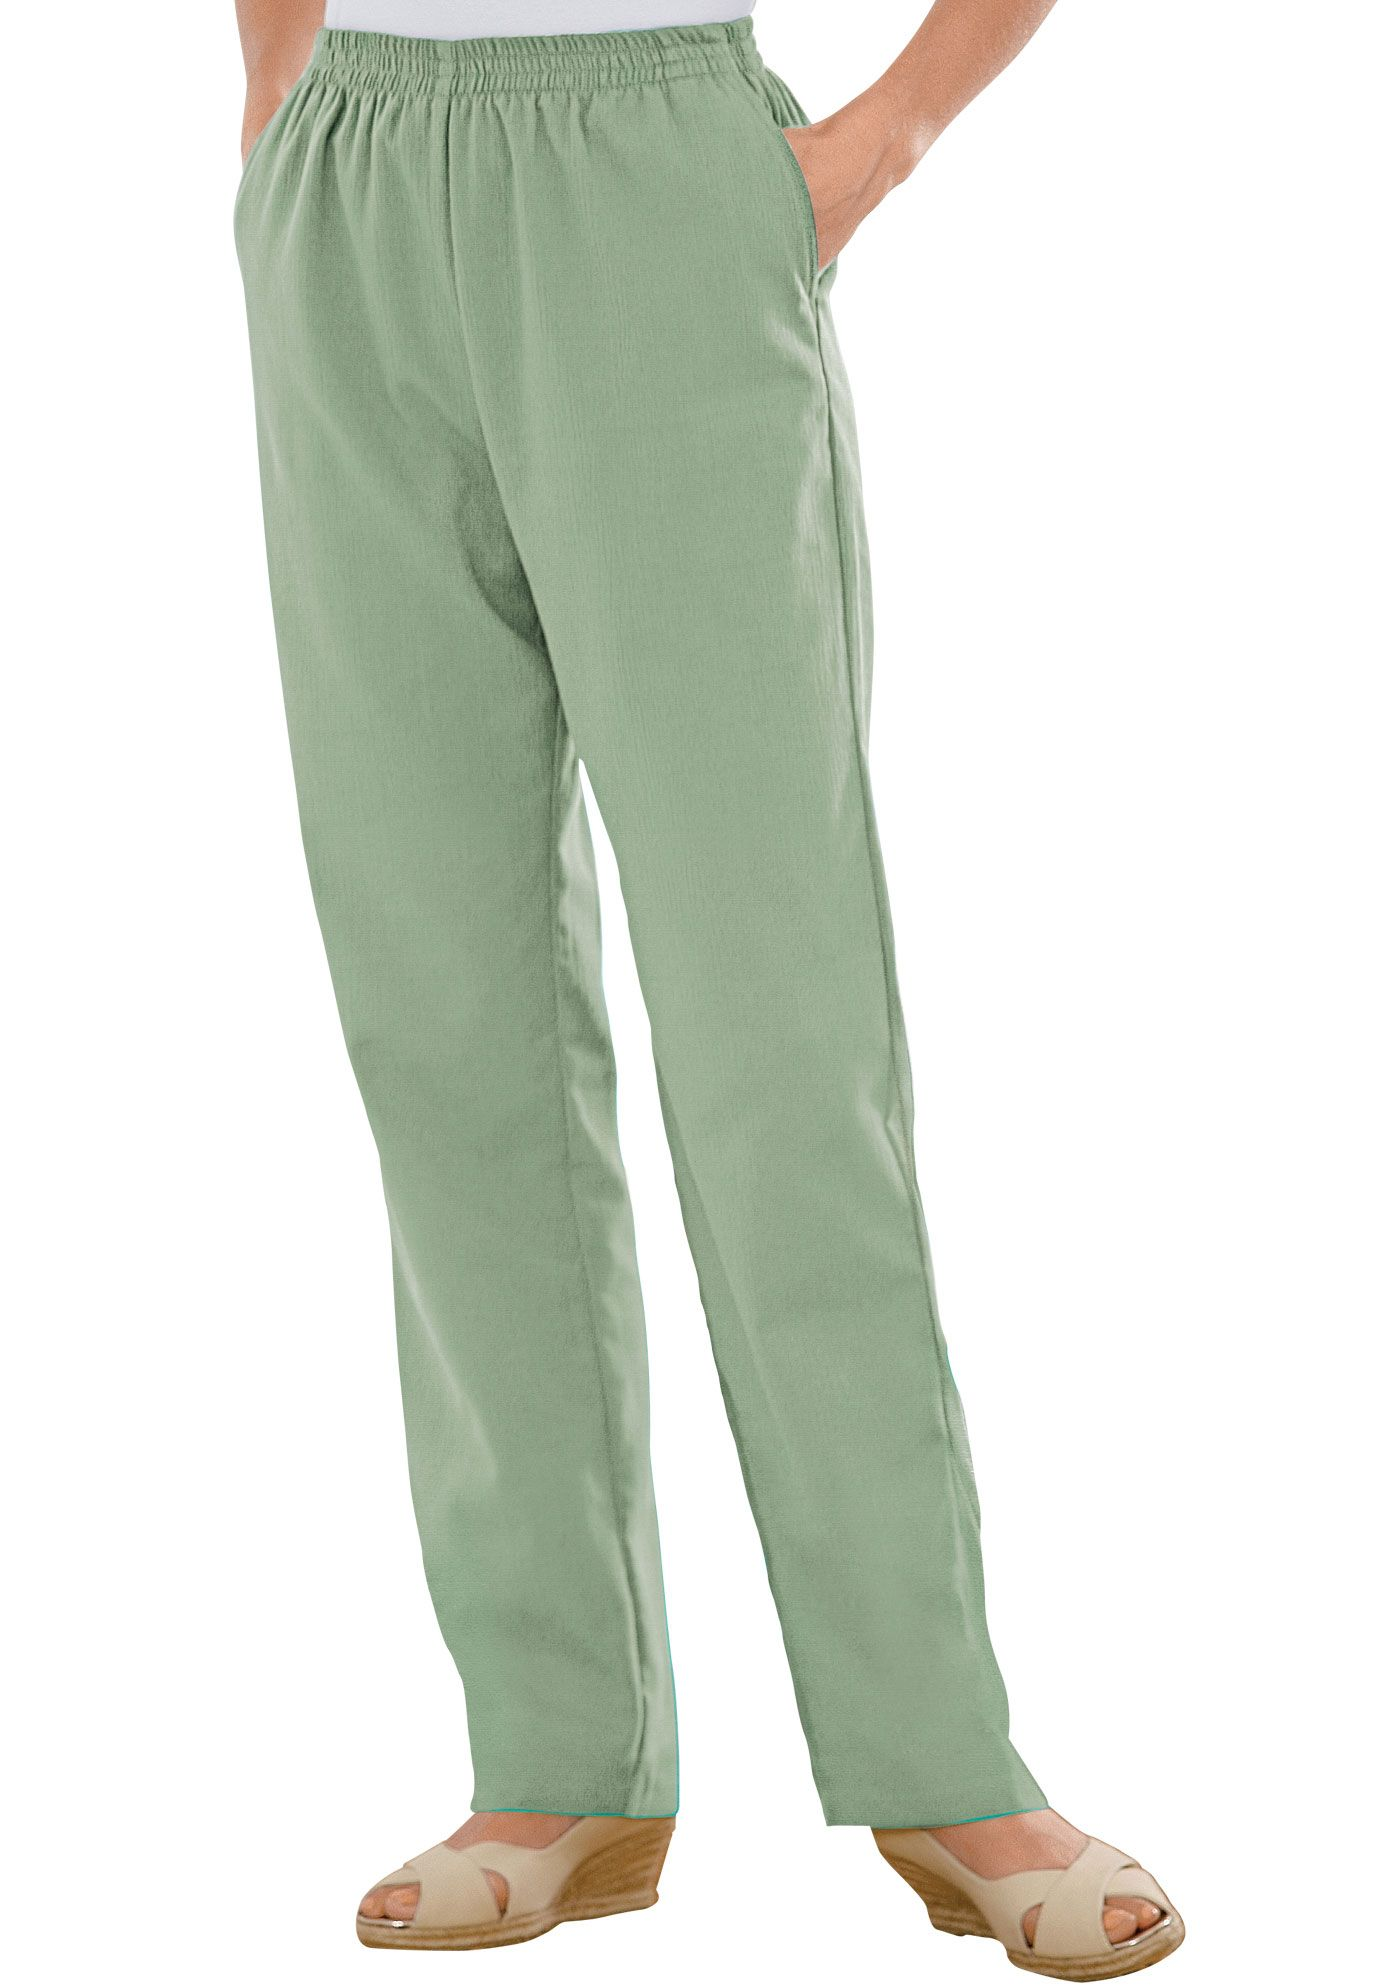 2684ea439c9 Petite pants in Calcutta cloth by Only Necessities®